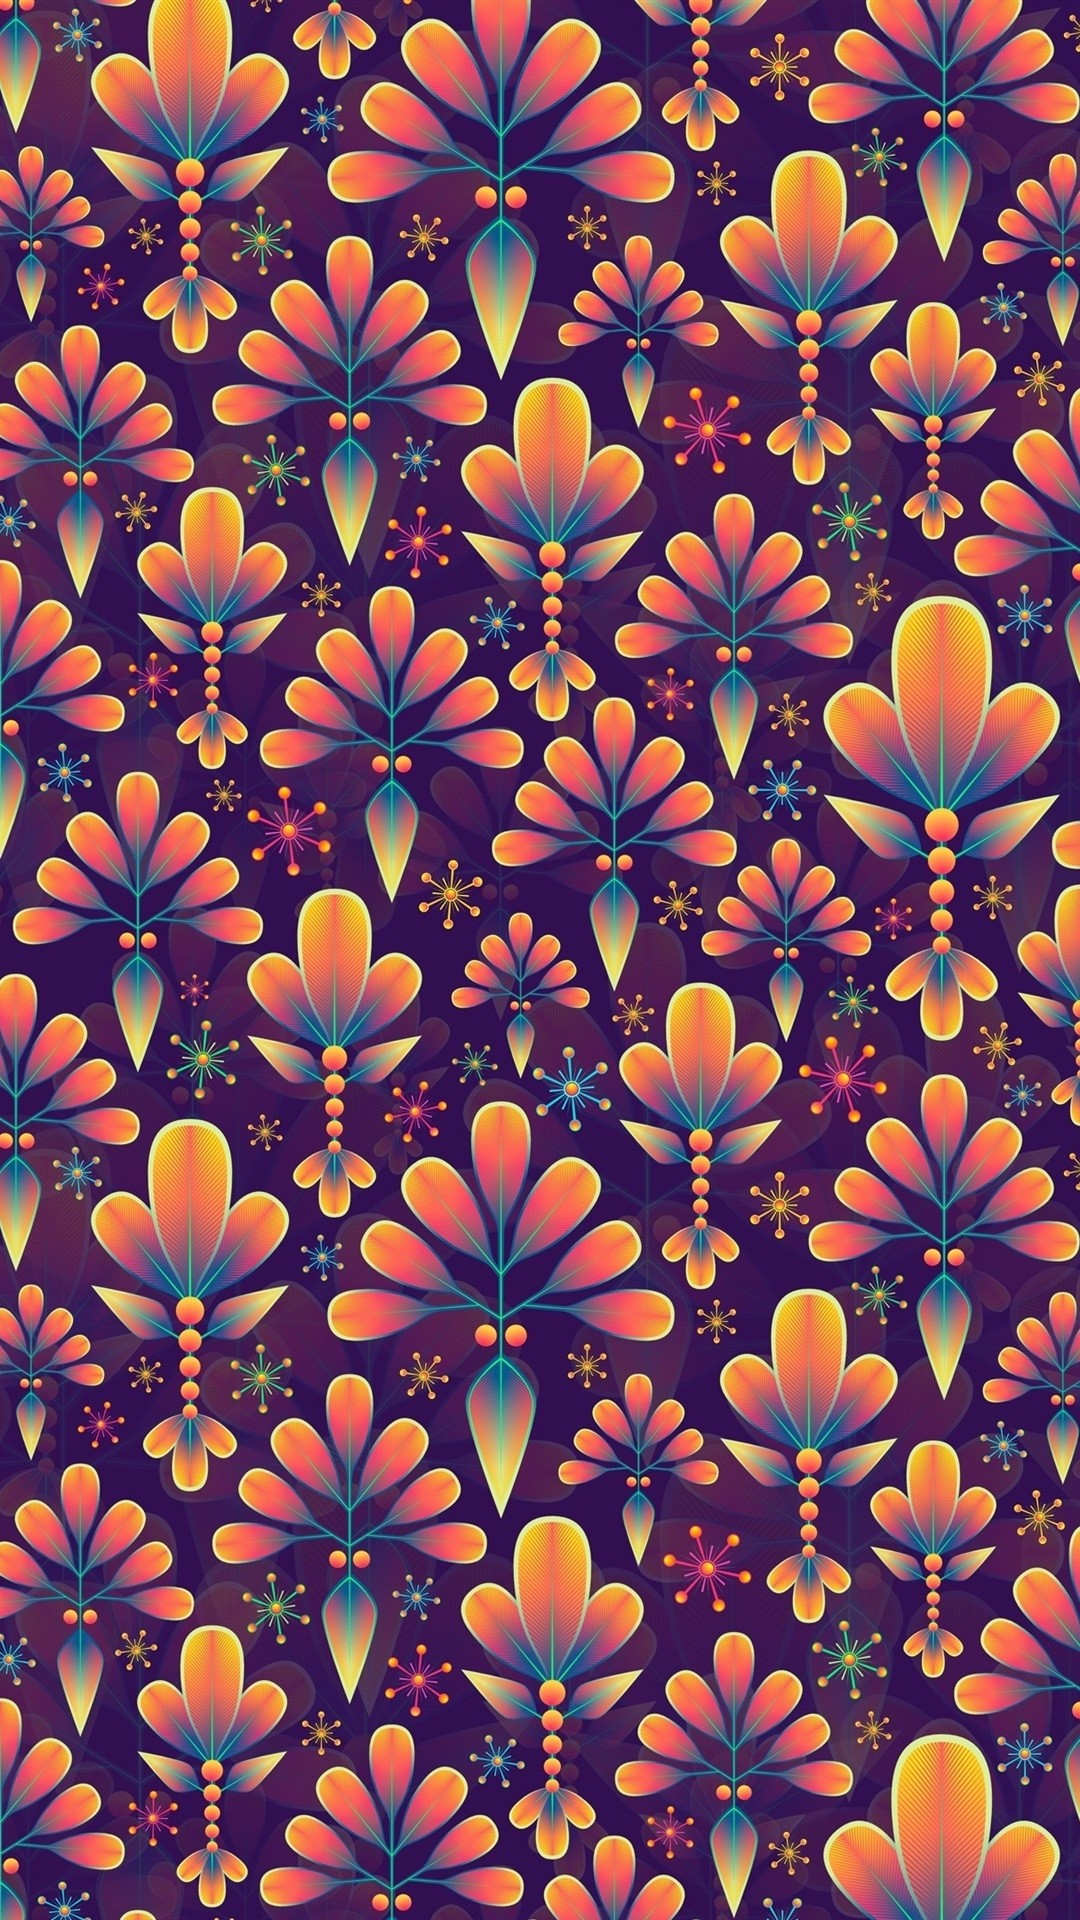 Lilly Pulitzer wallpaper for iPhone